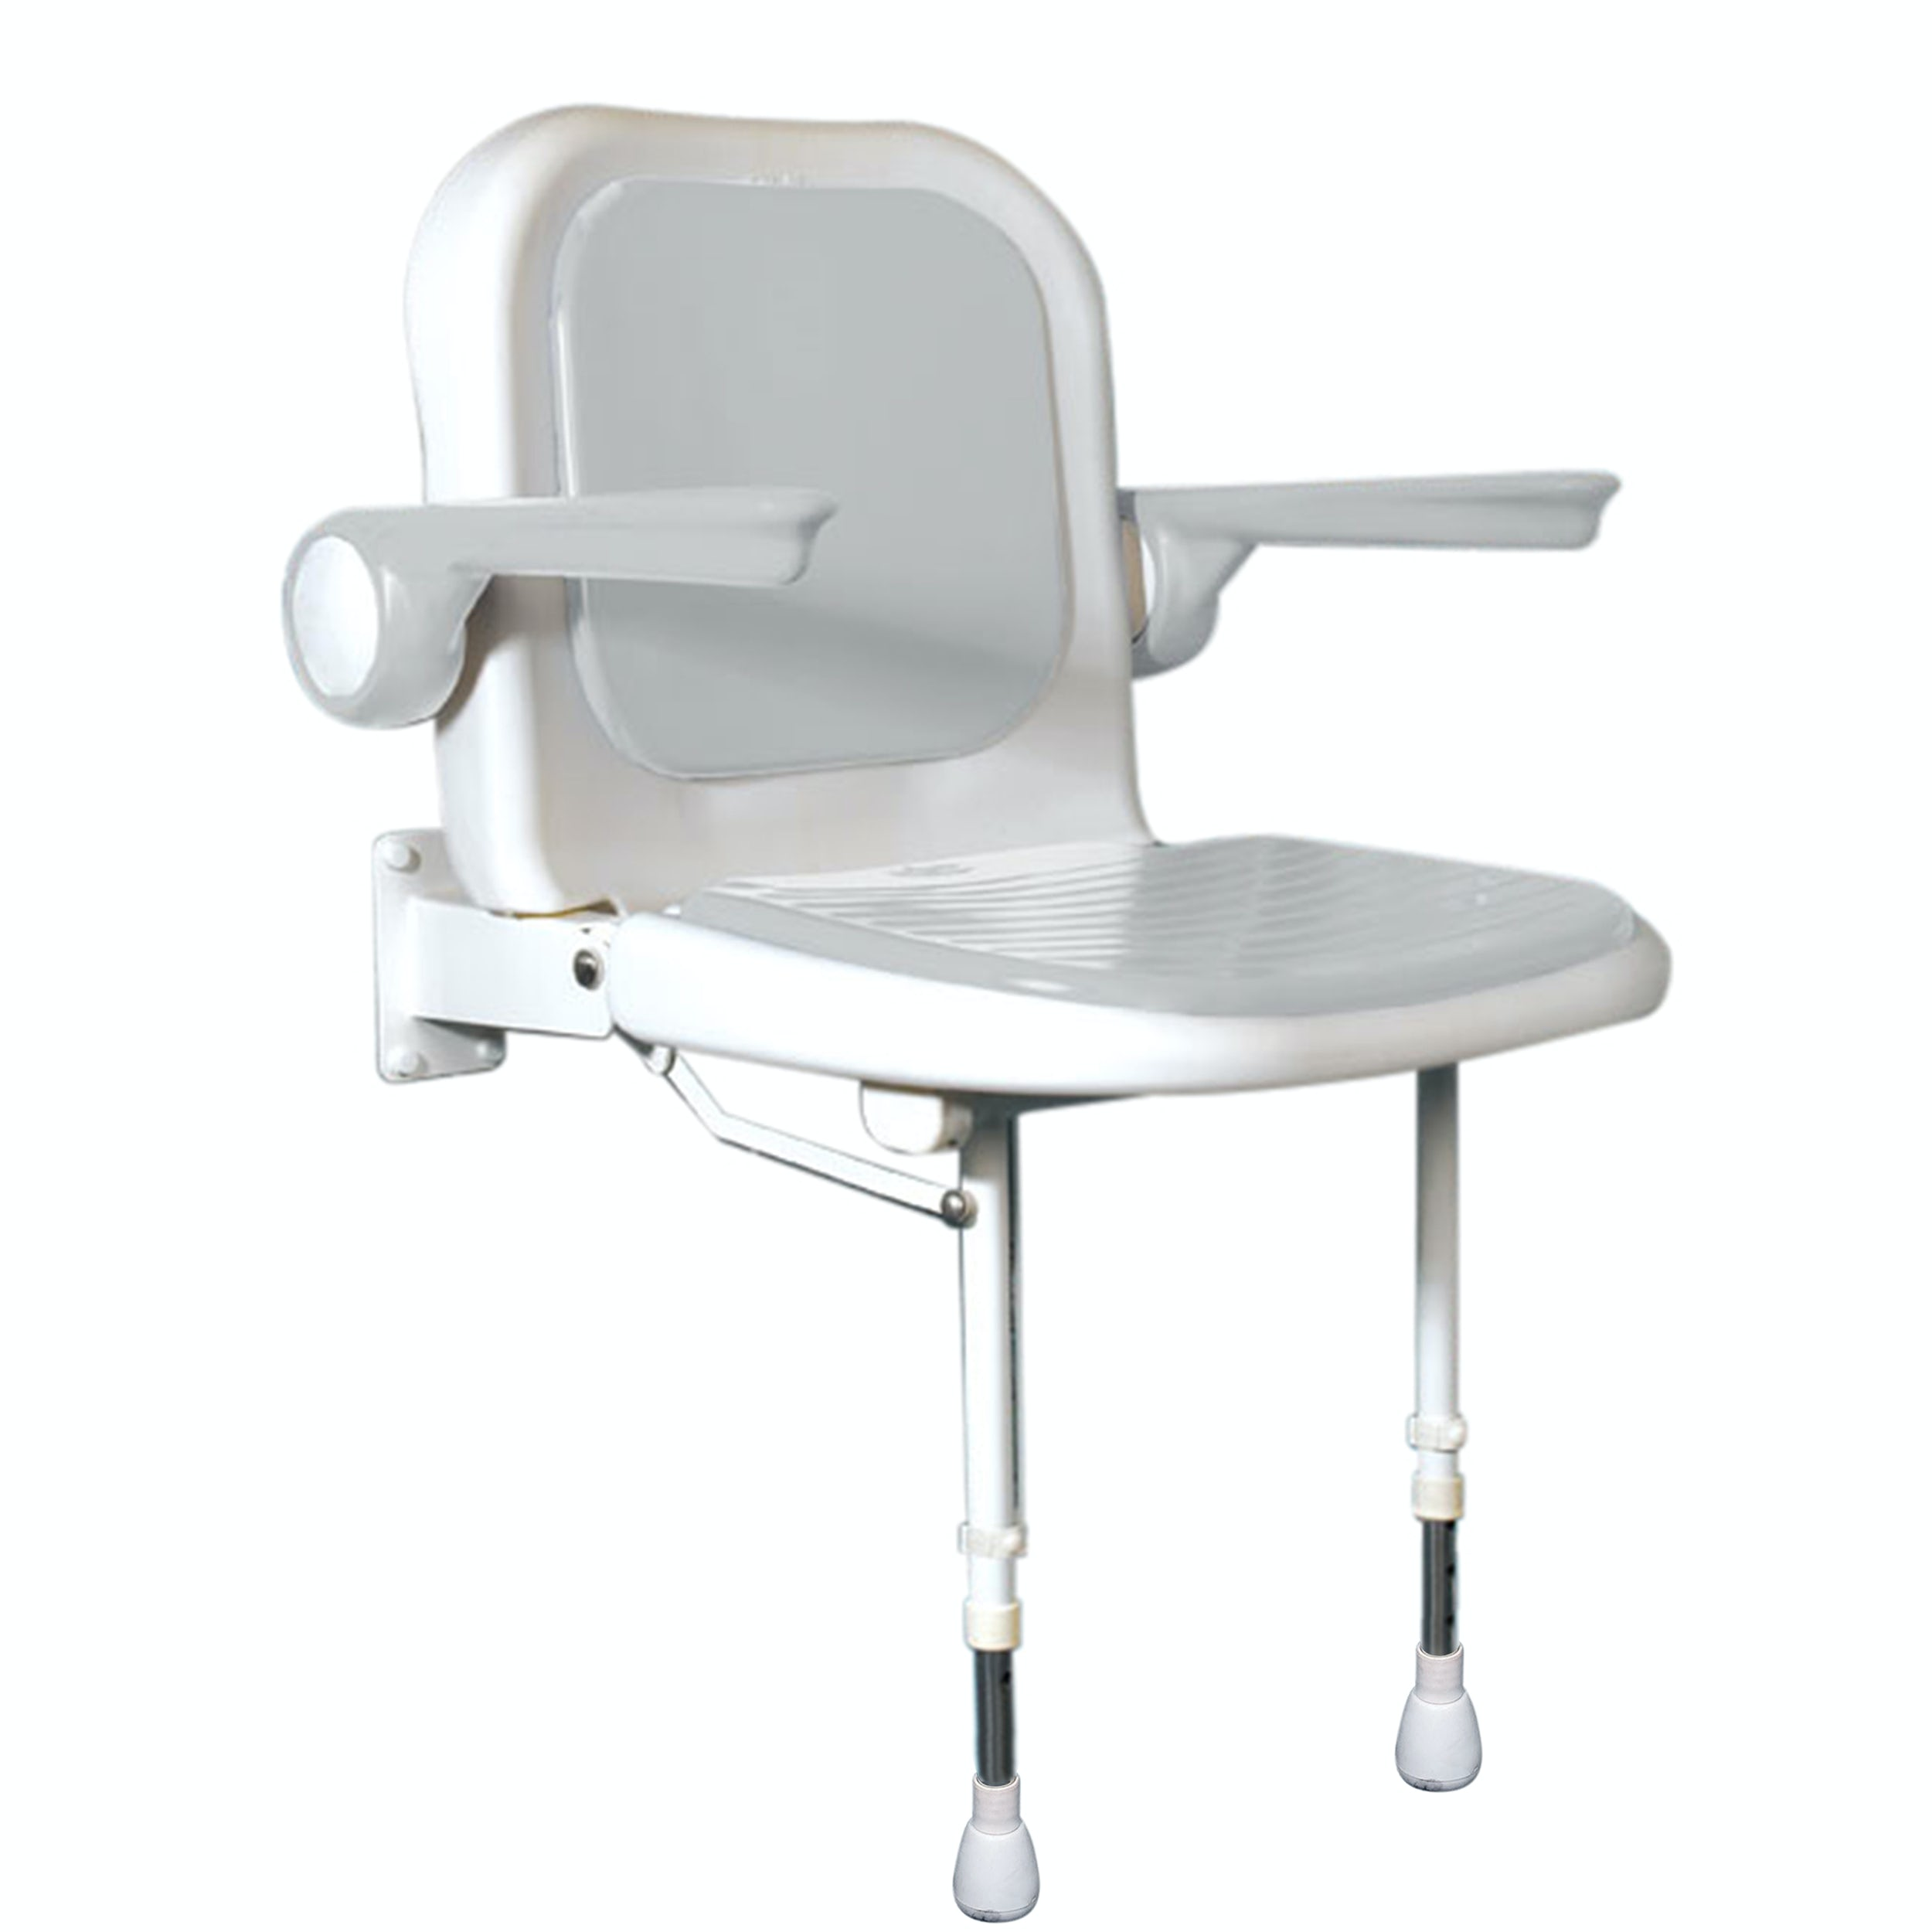 AKW Advanced folding shower seat with moulded seat and full padding grey - Sold by Victoria Plum